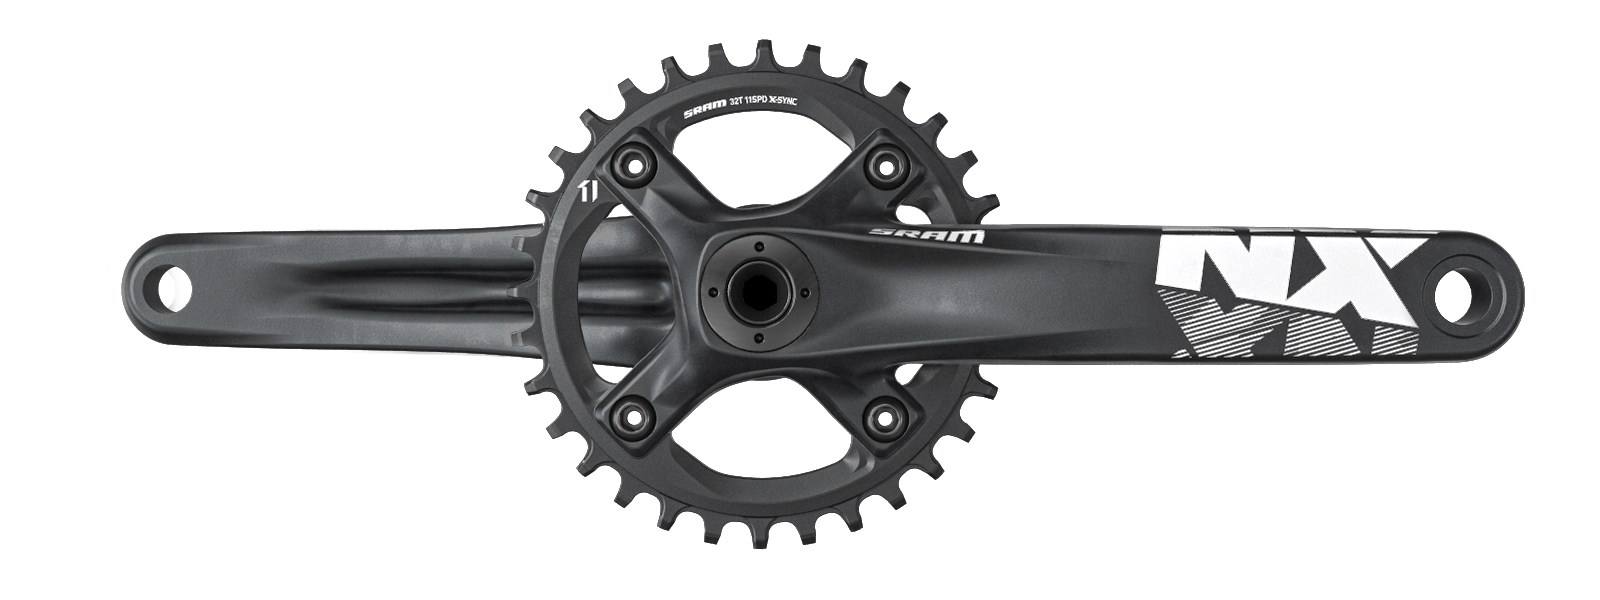 SRAM_MTB_NX_Crank_1000_32T_AL_Spider_30mm_Side_Black_M